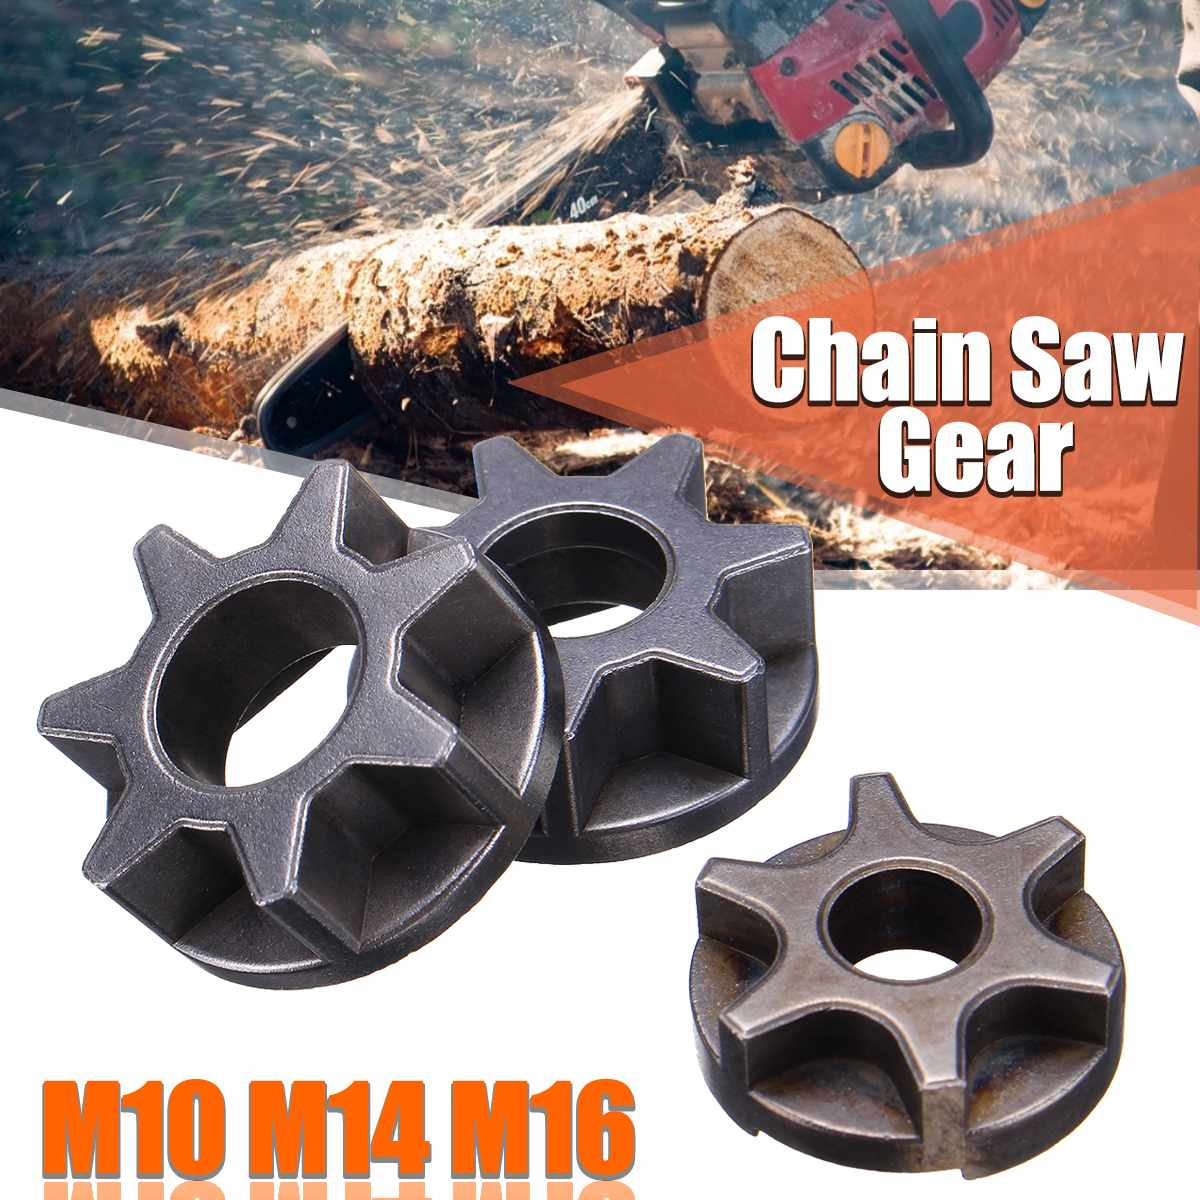 M10/M14/M16 Chainsaw Gear Alloy Steel Fit For 100/115/125/150/180 Angle Grinder Angle Grinder Replacement Gear Replacement Power